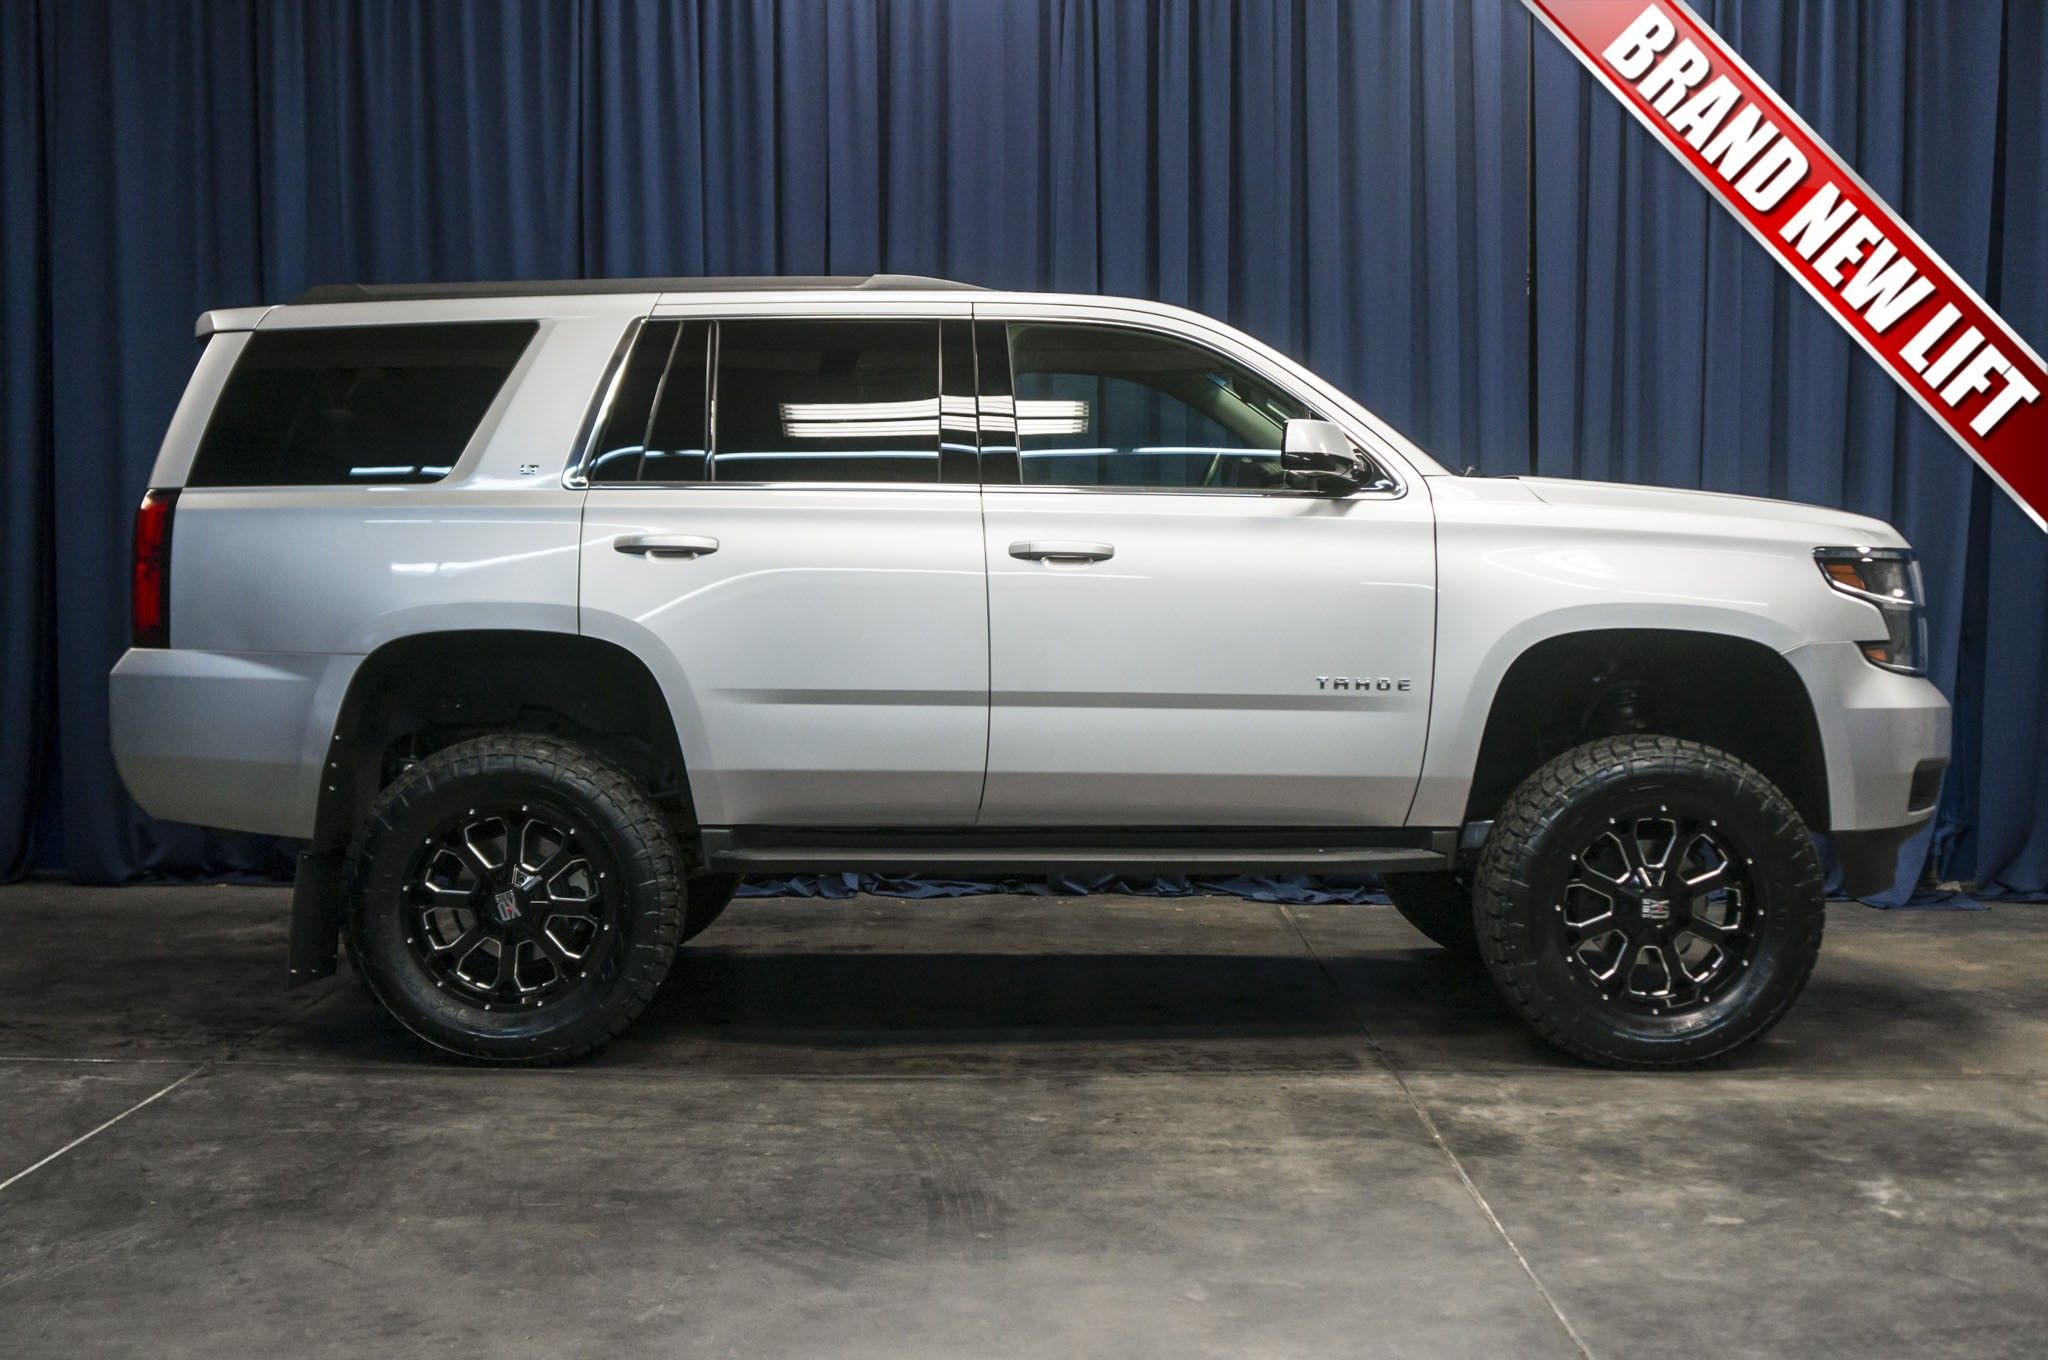 New Chevy Tahoe Lifted Lifted 2015 Chevrolet Tahoe Lt 4x4